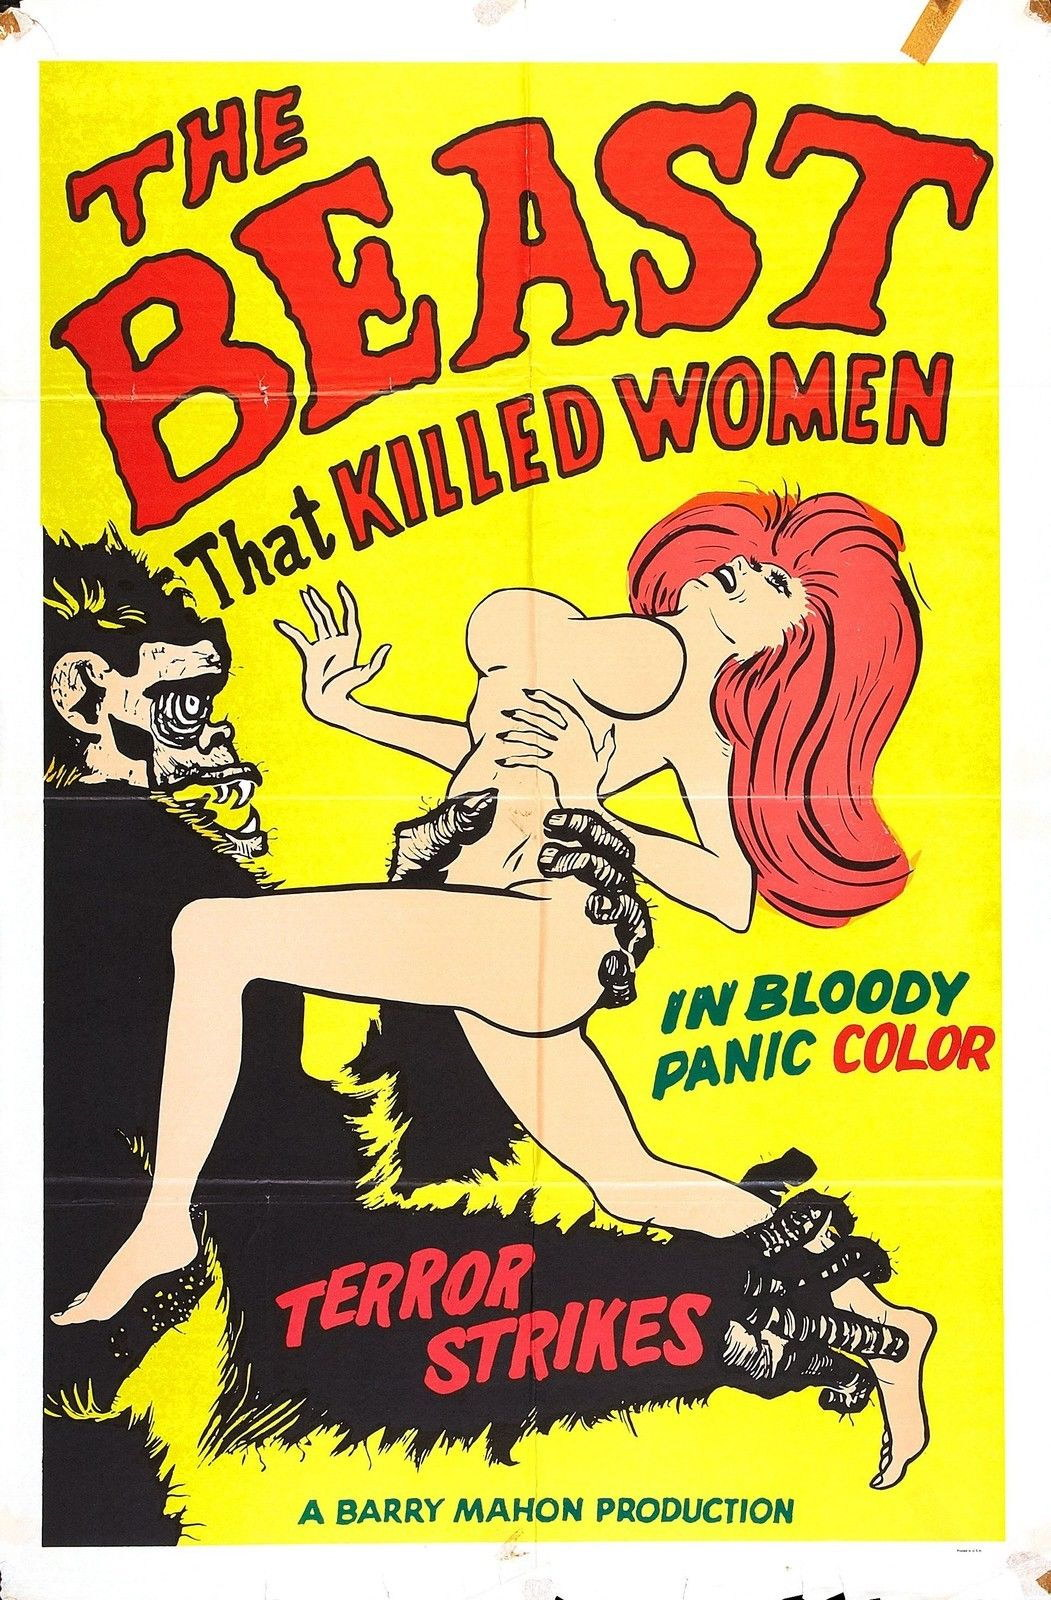 73405-THE-BEAST-THAT-KILLED-WOMEN-1965-Exploitation-Wall-Print-Poster-Affiche